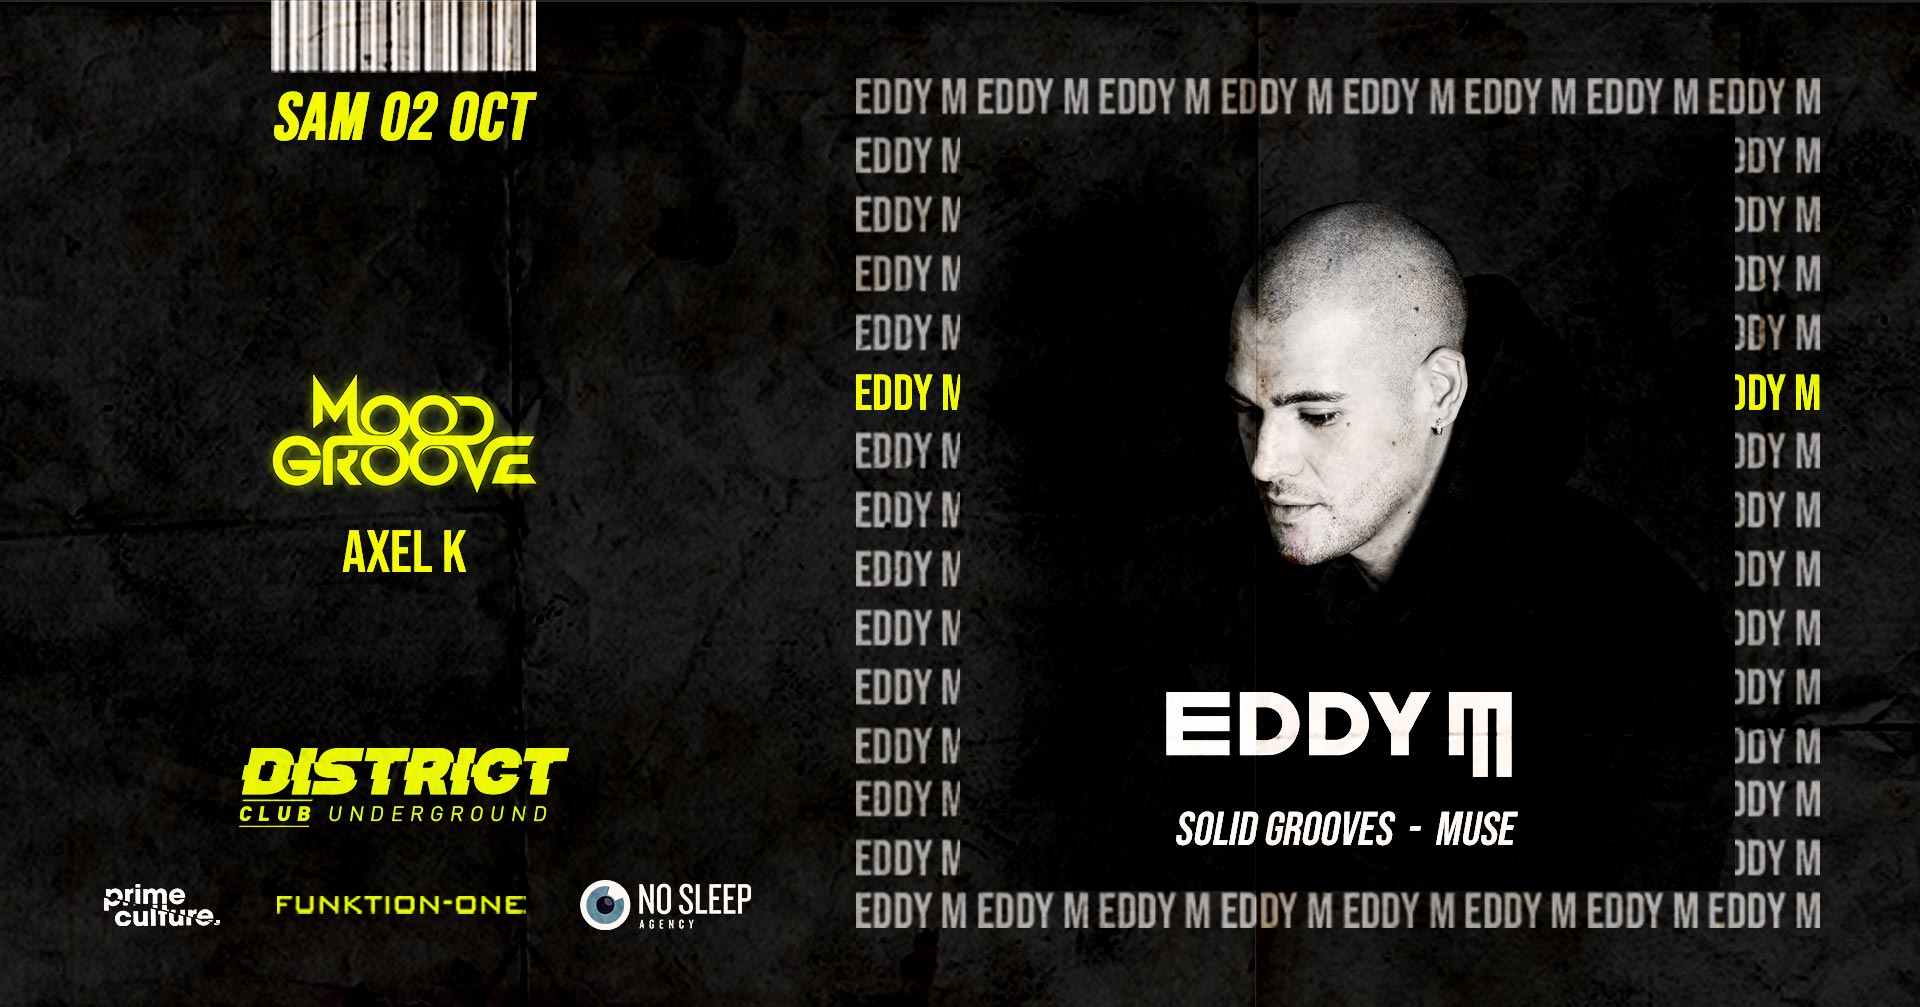 EDDY M (Solid Grooves - Muse) DISTRICT CLUB UNDER..